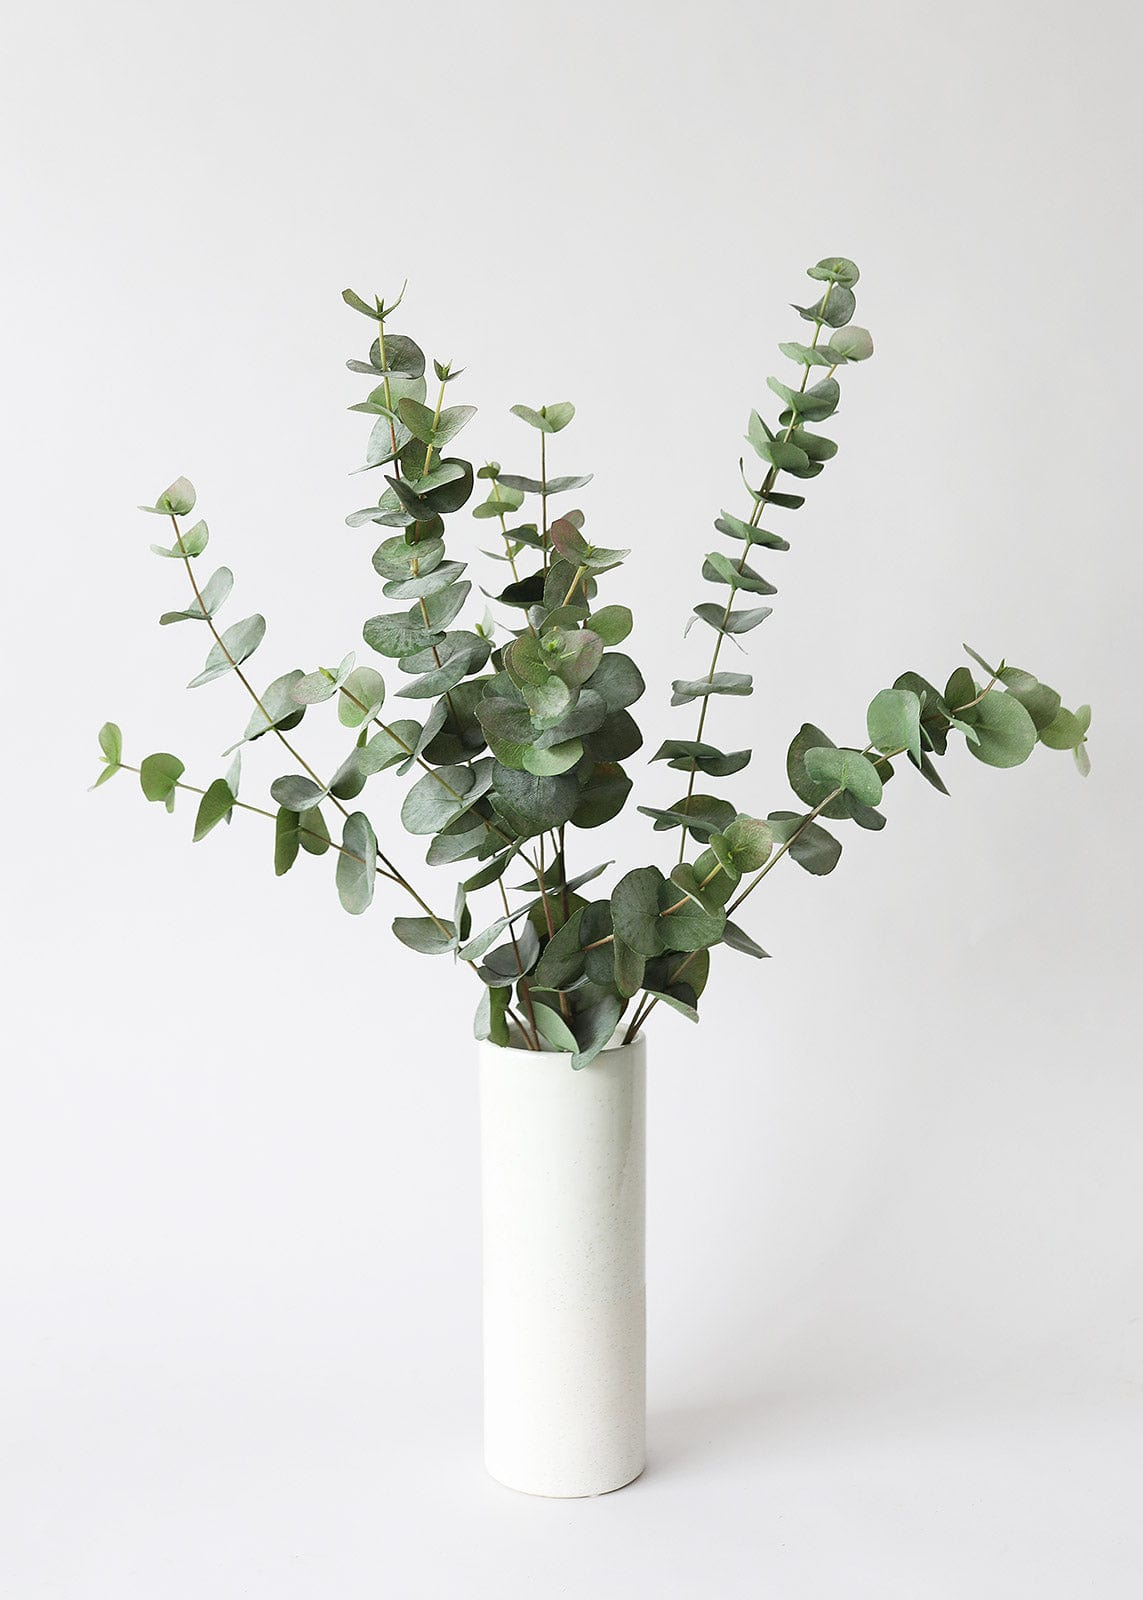 Spiral Eucalyptus Greenery in White Vase